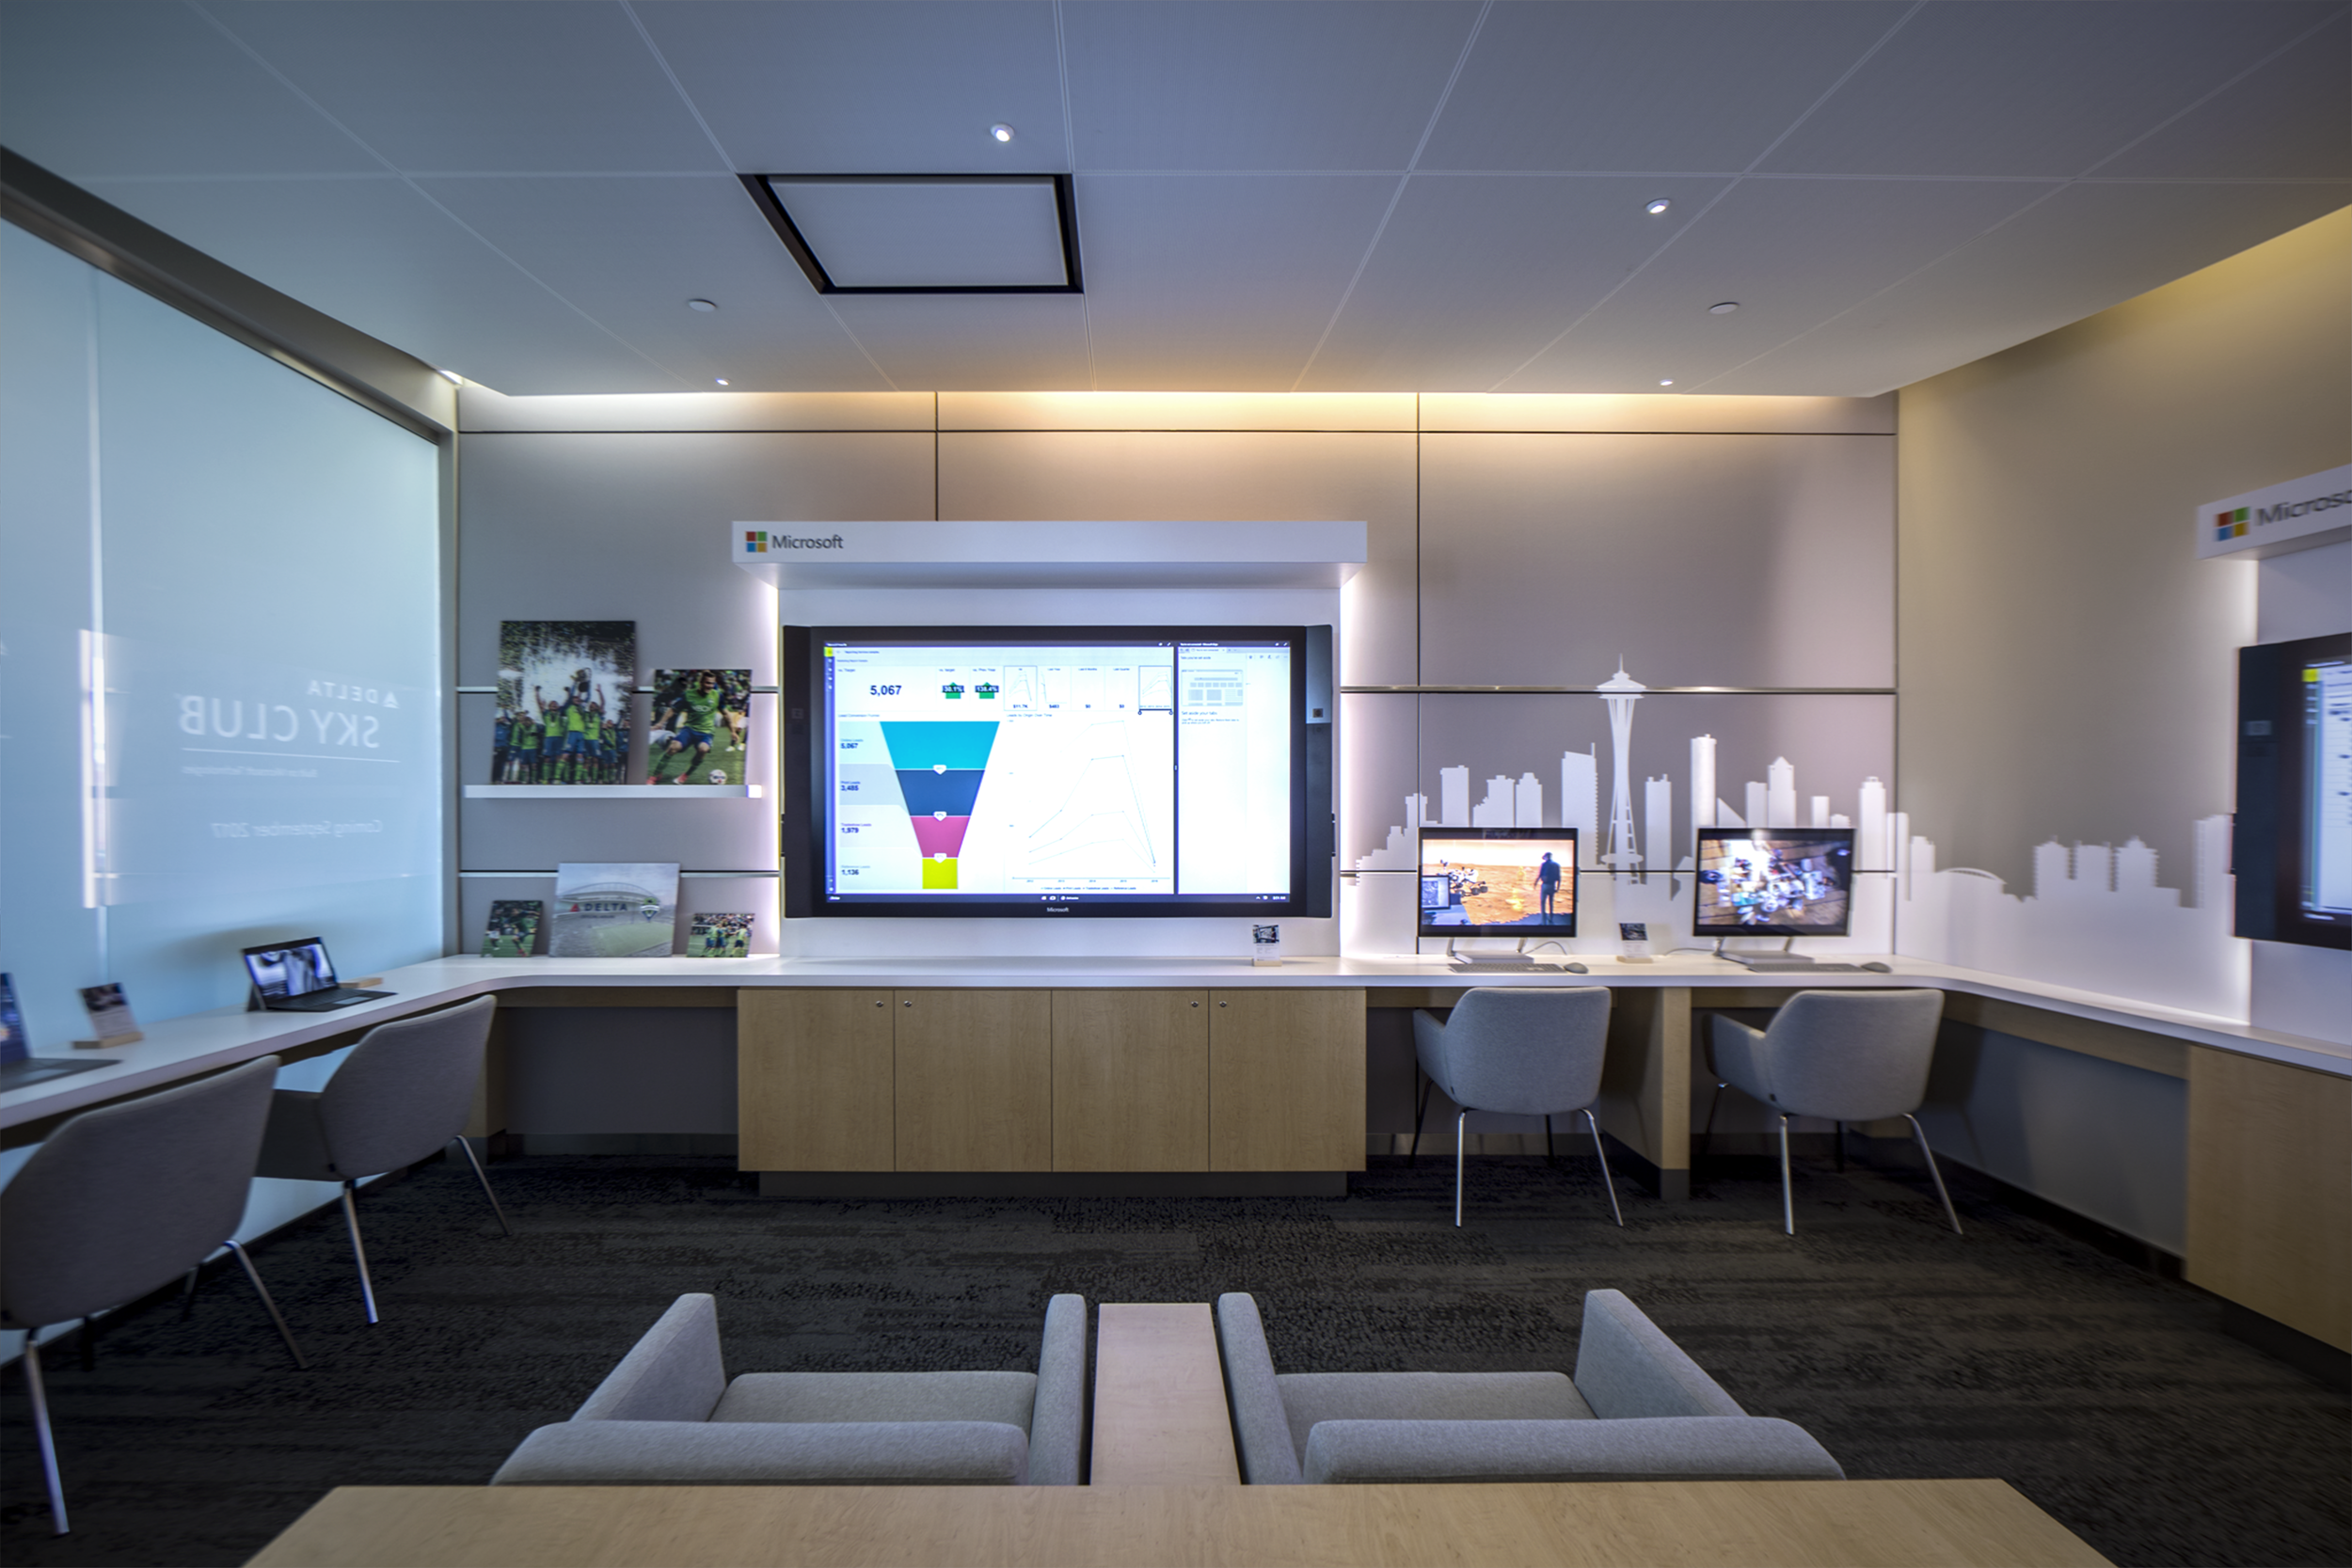 Delta Sky Lounge_imagicorps (3).png